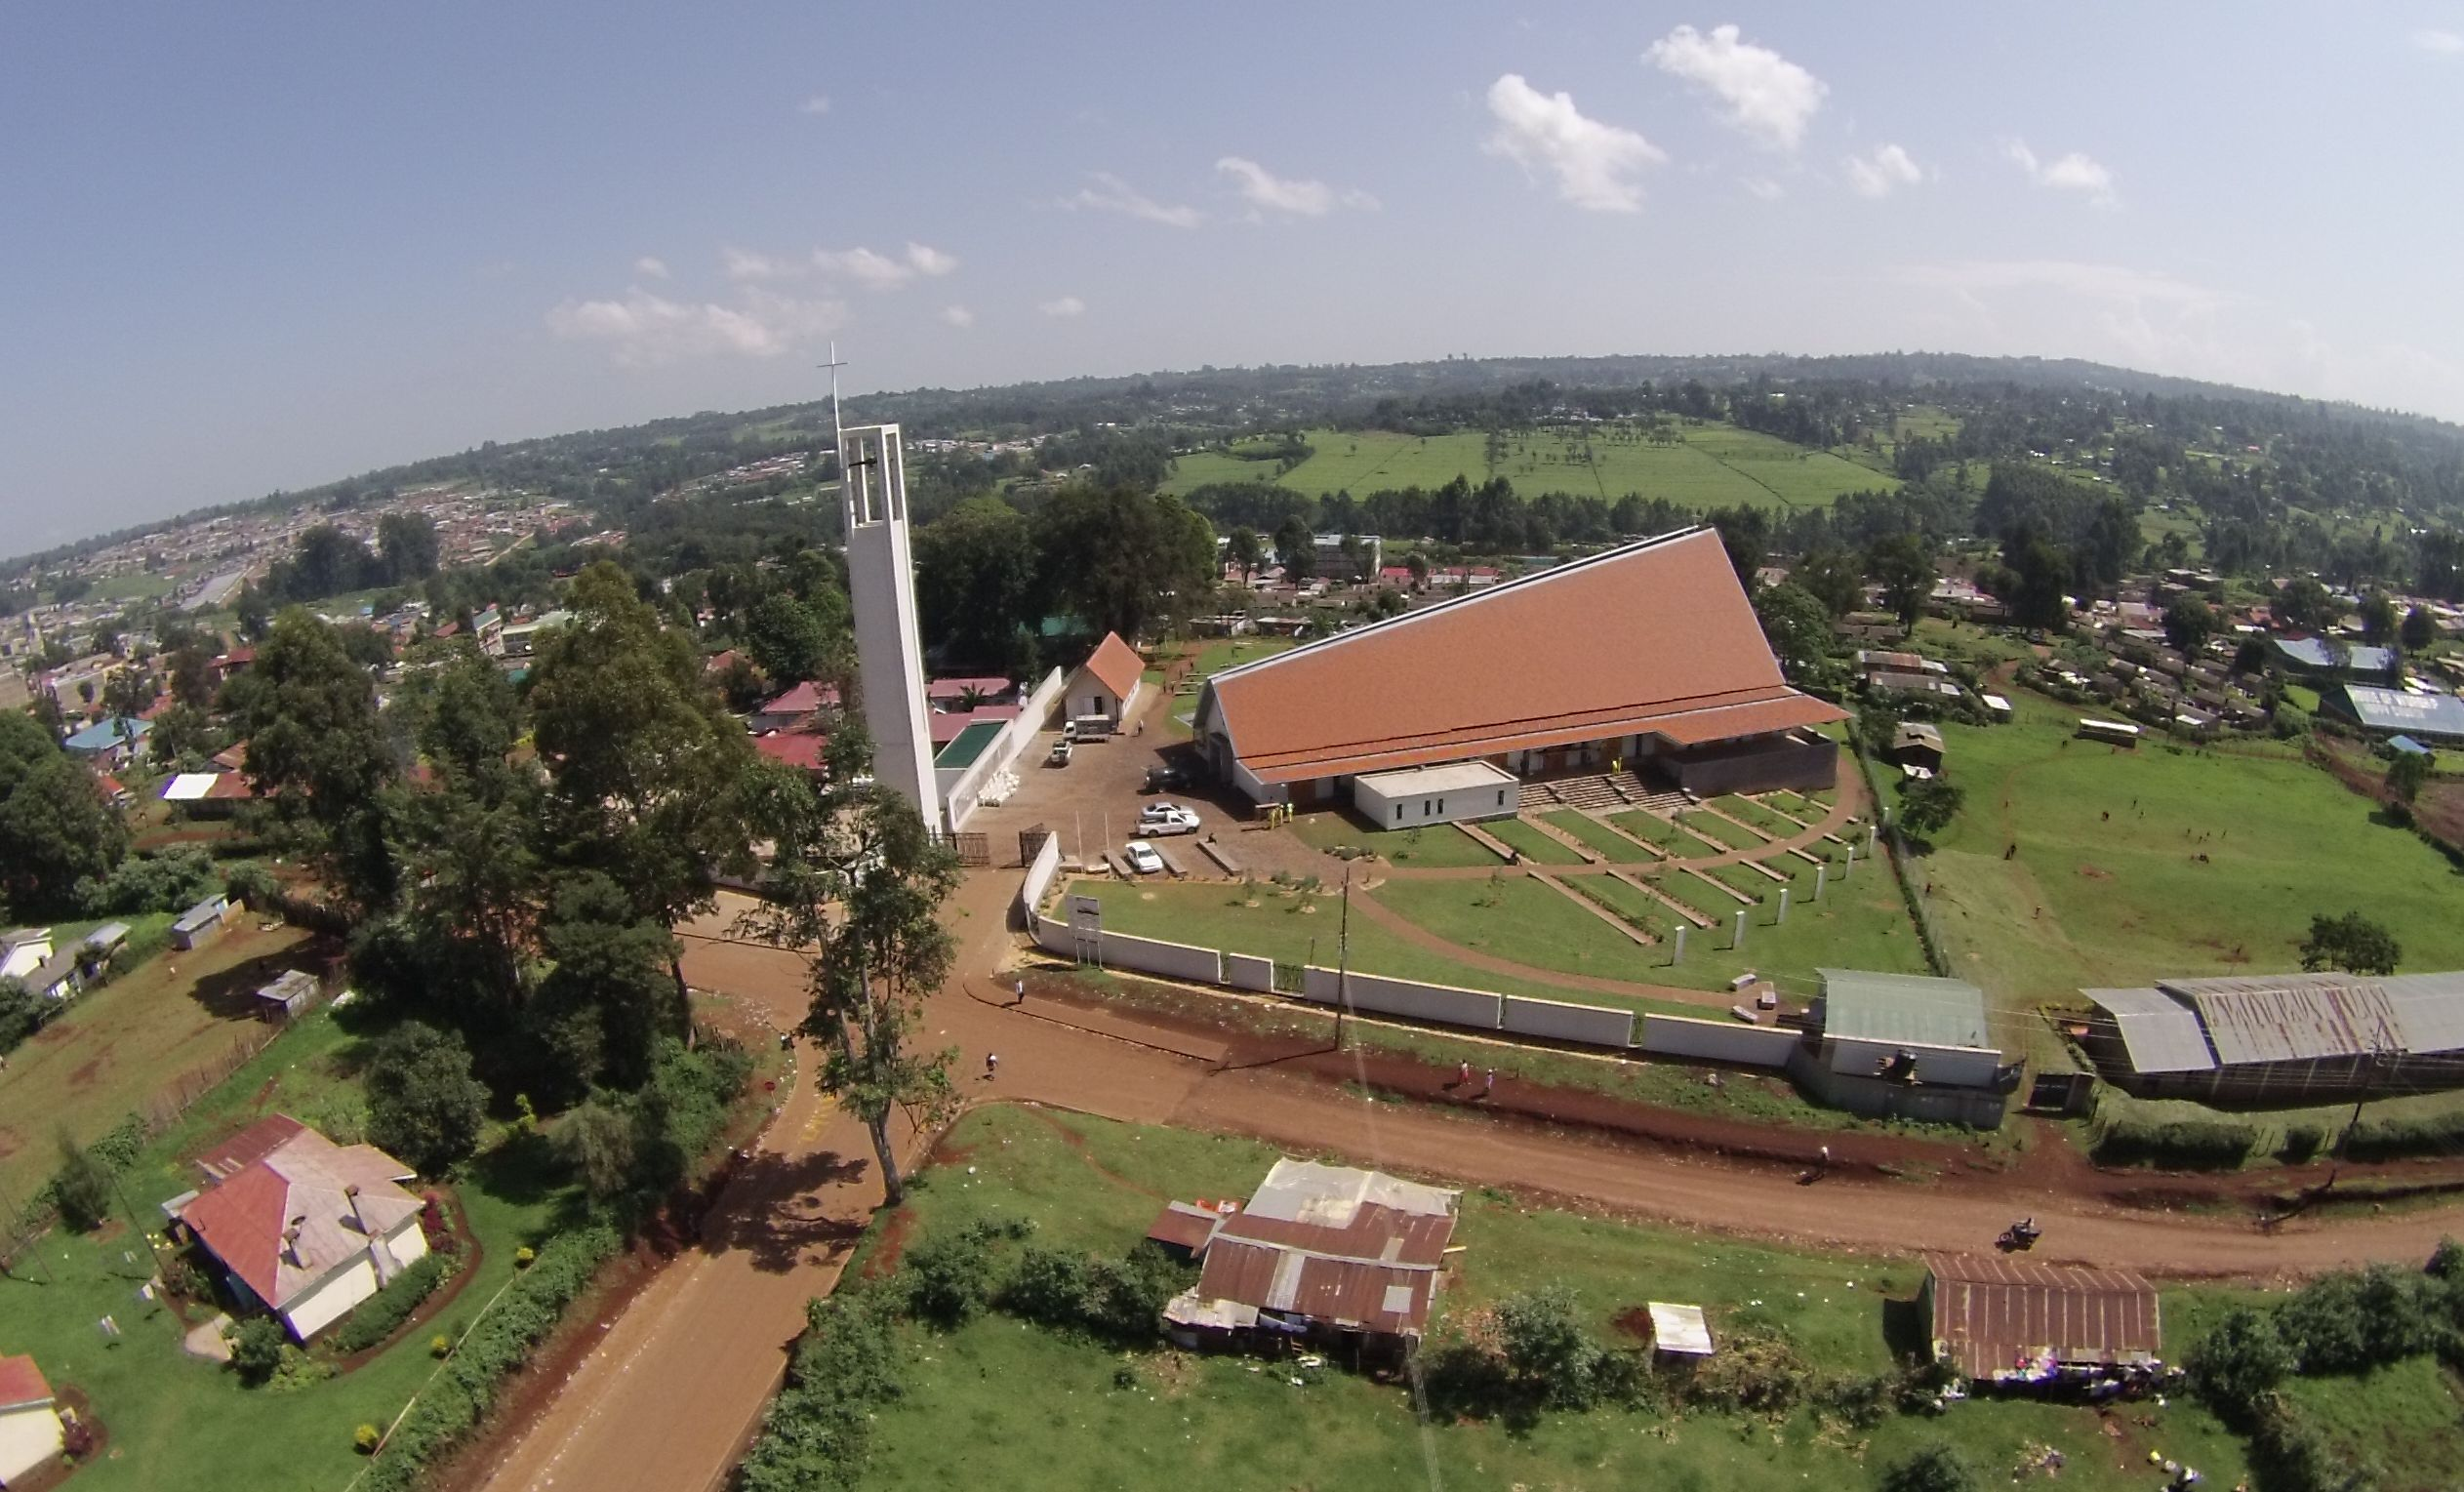 Kericho Cathedral Roof